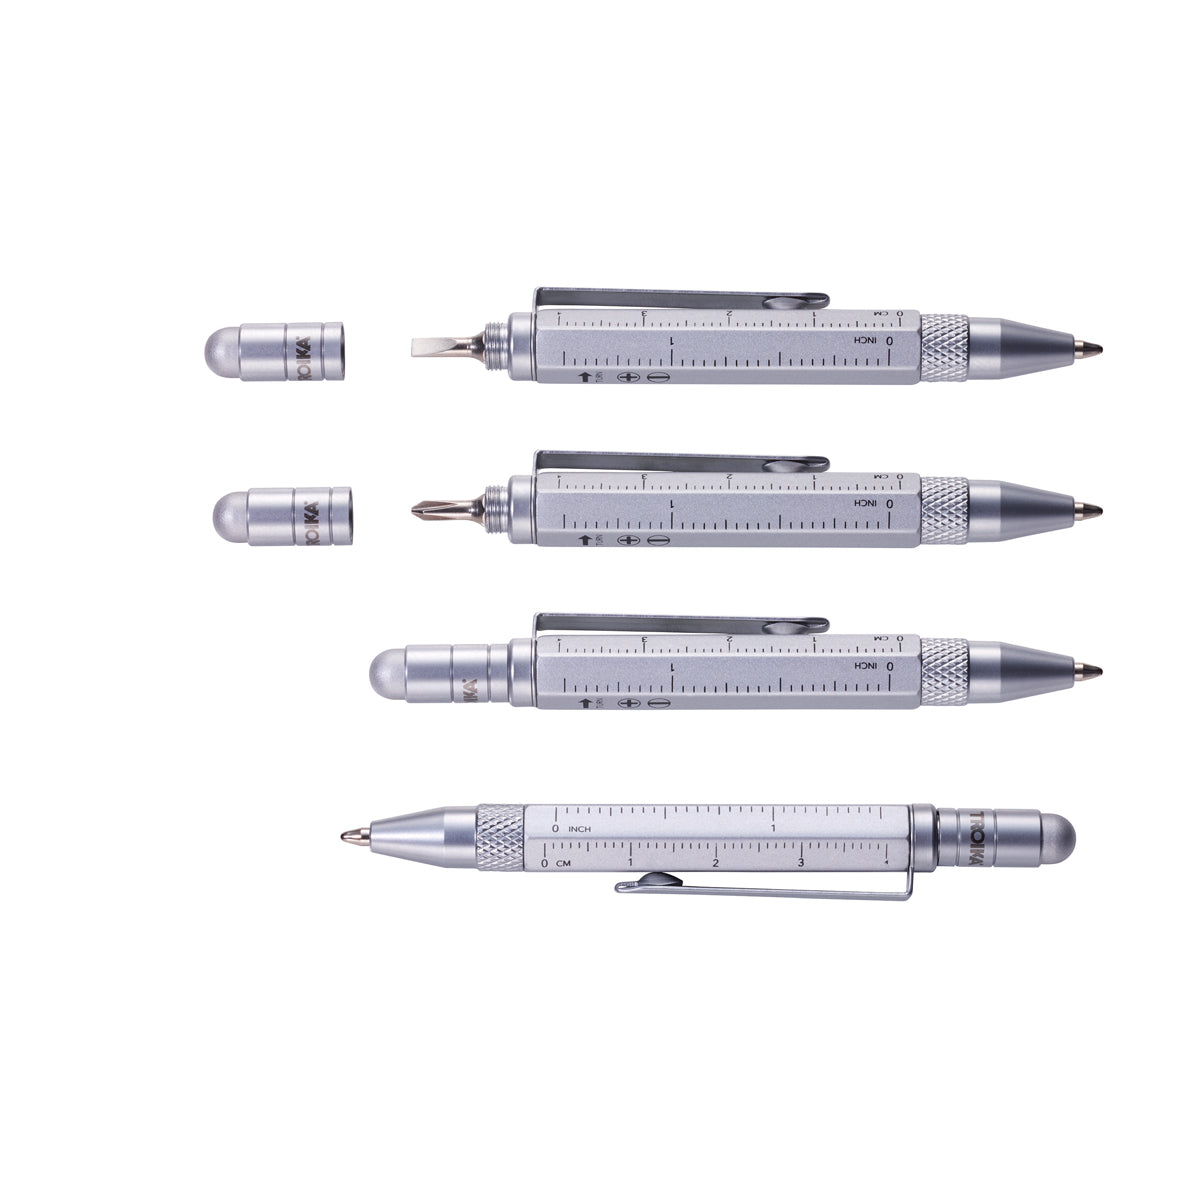 Meet the Liliput Mini Pen, Newest Member of the Troika Construction Pen Family